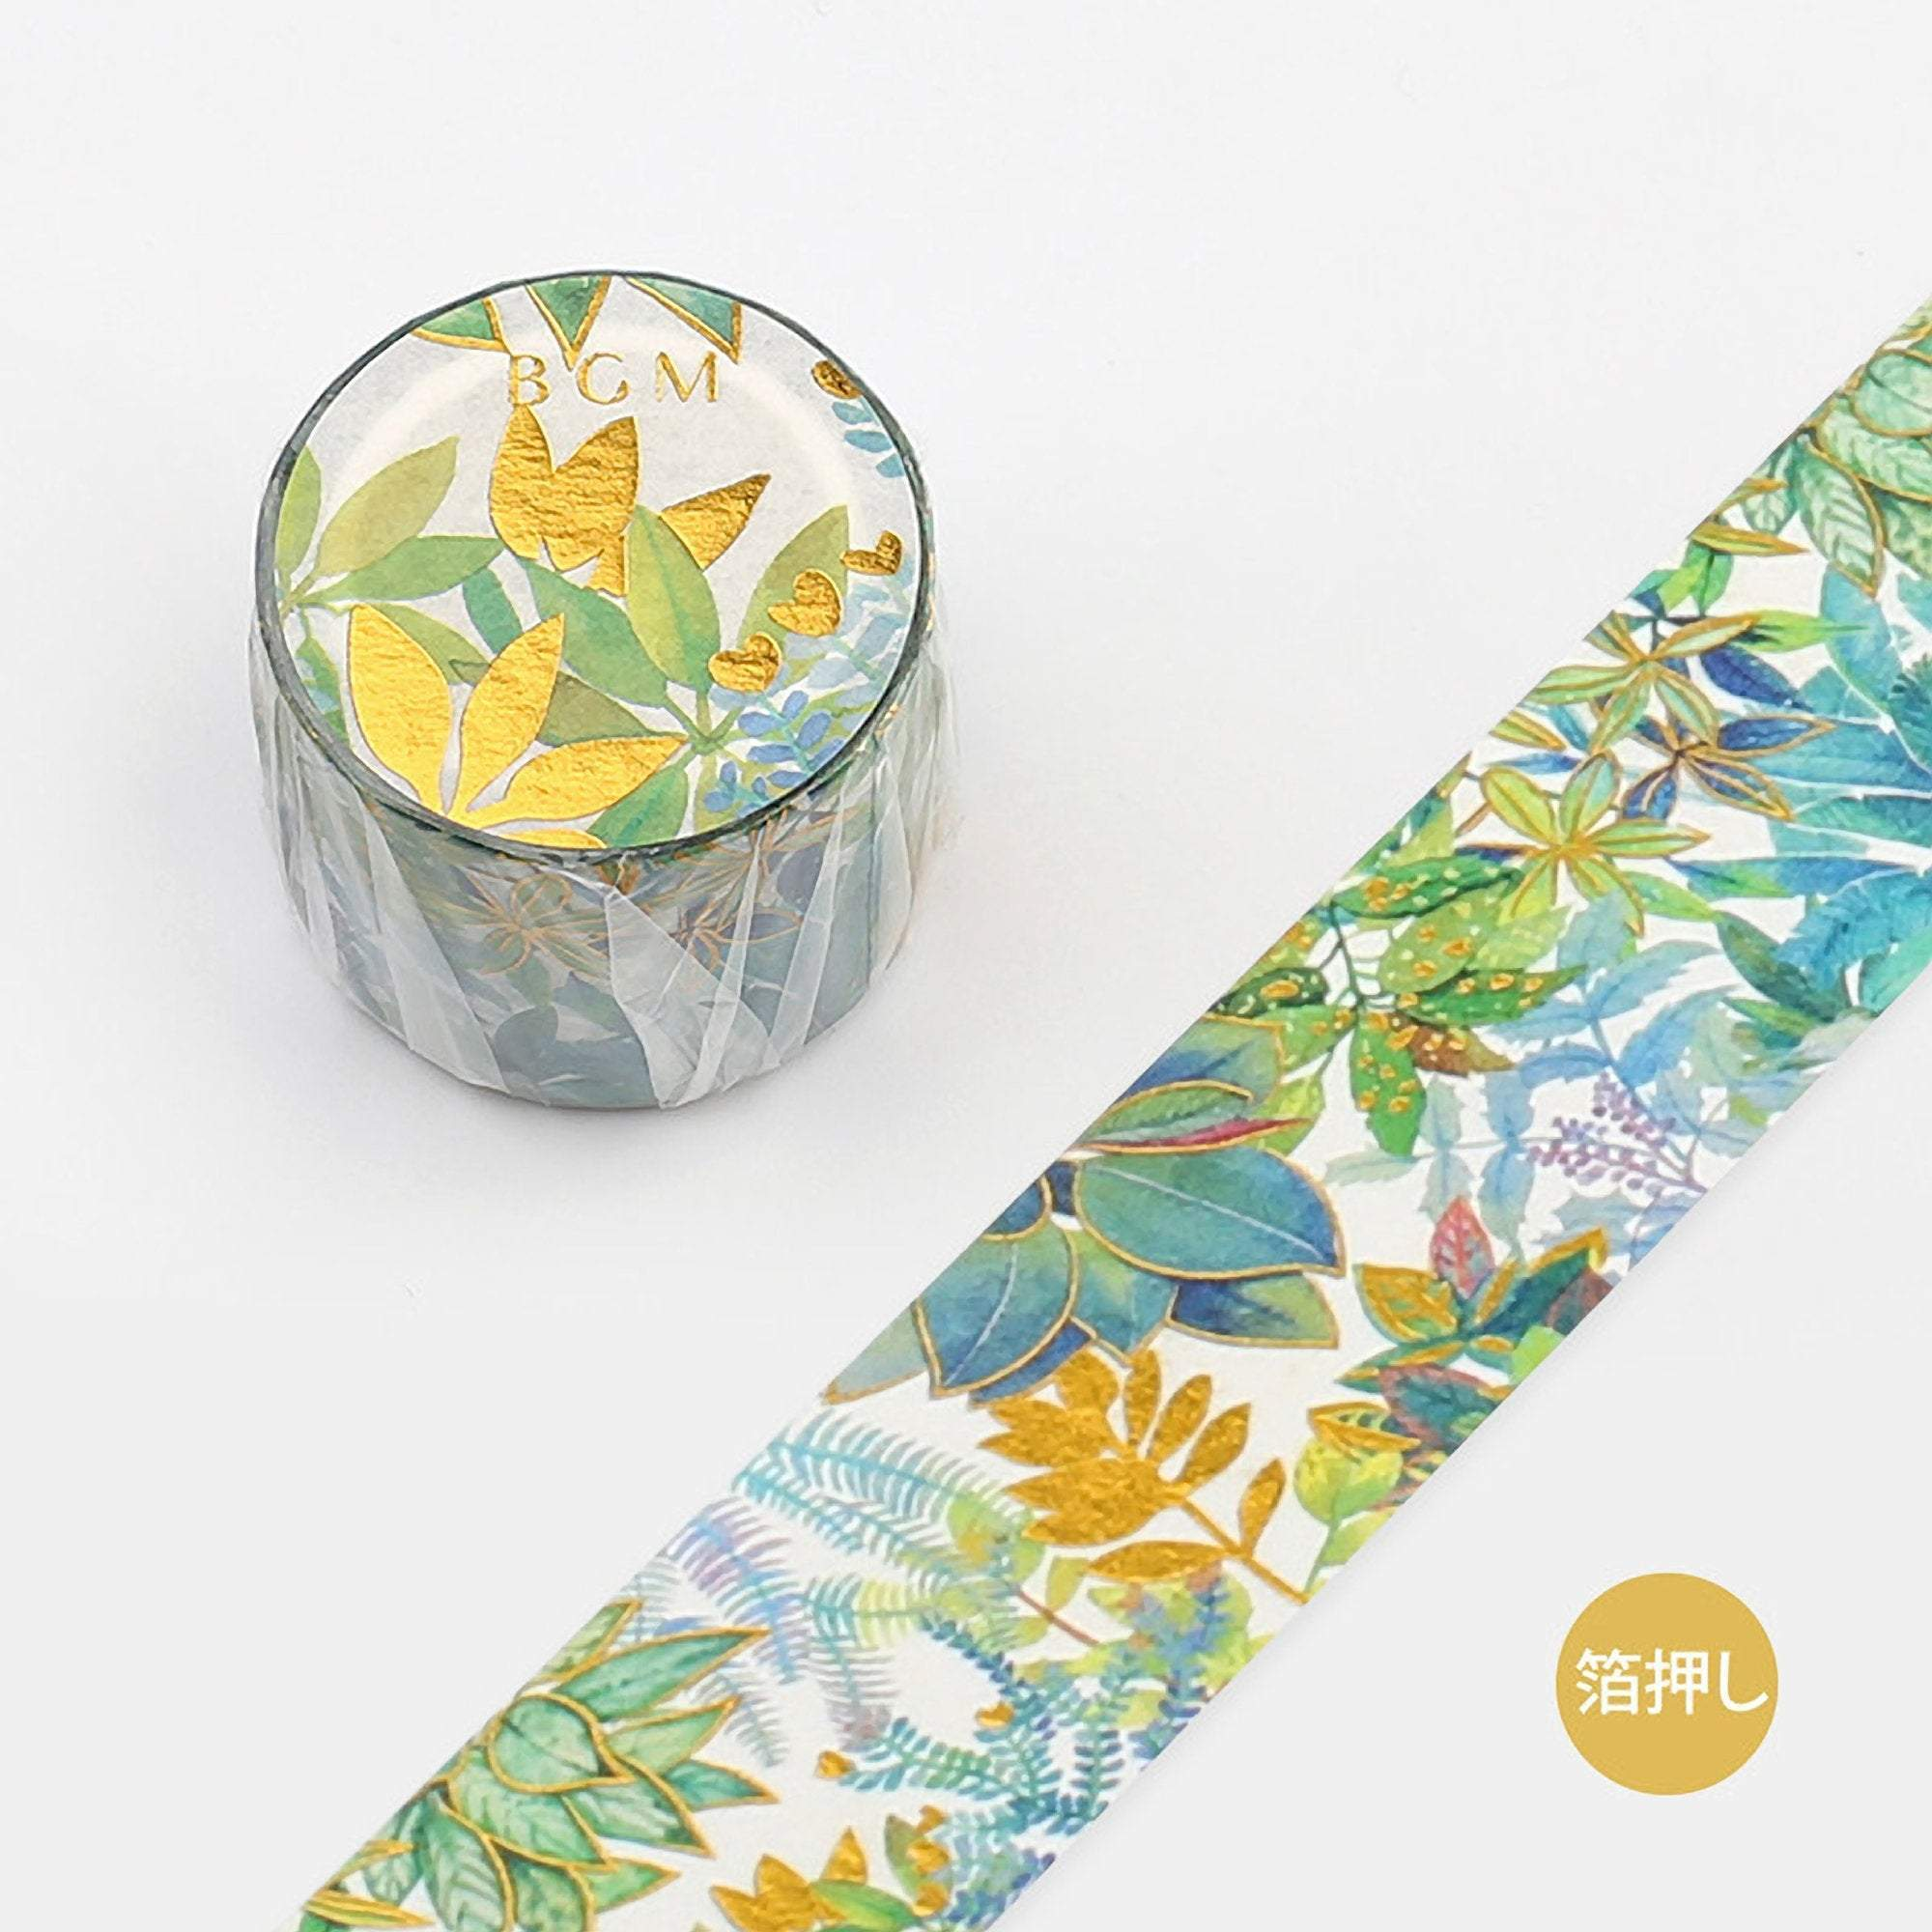 BGM Exotic Jungle Palm Leaves Gold Foil Washi Tape - The Stationery Life!